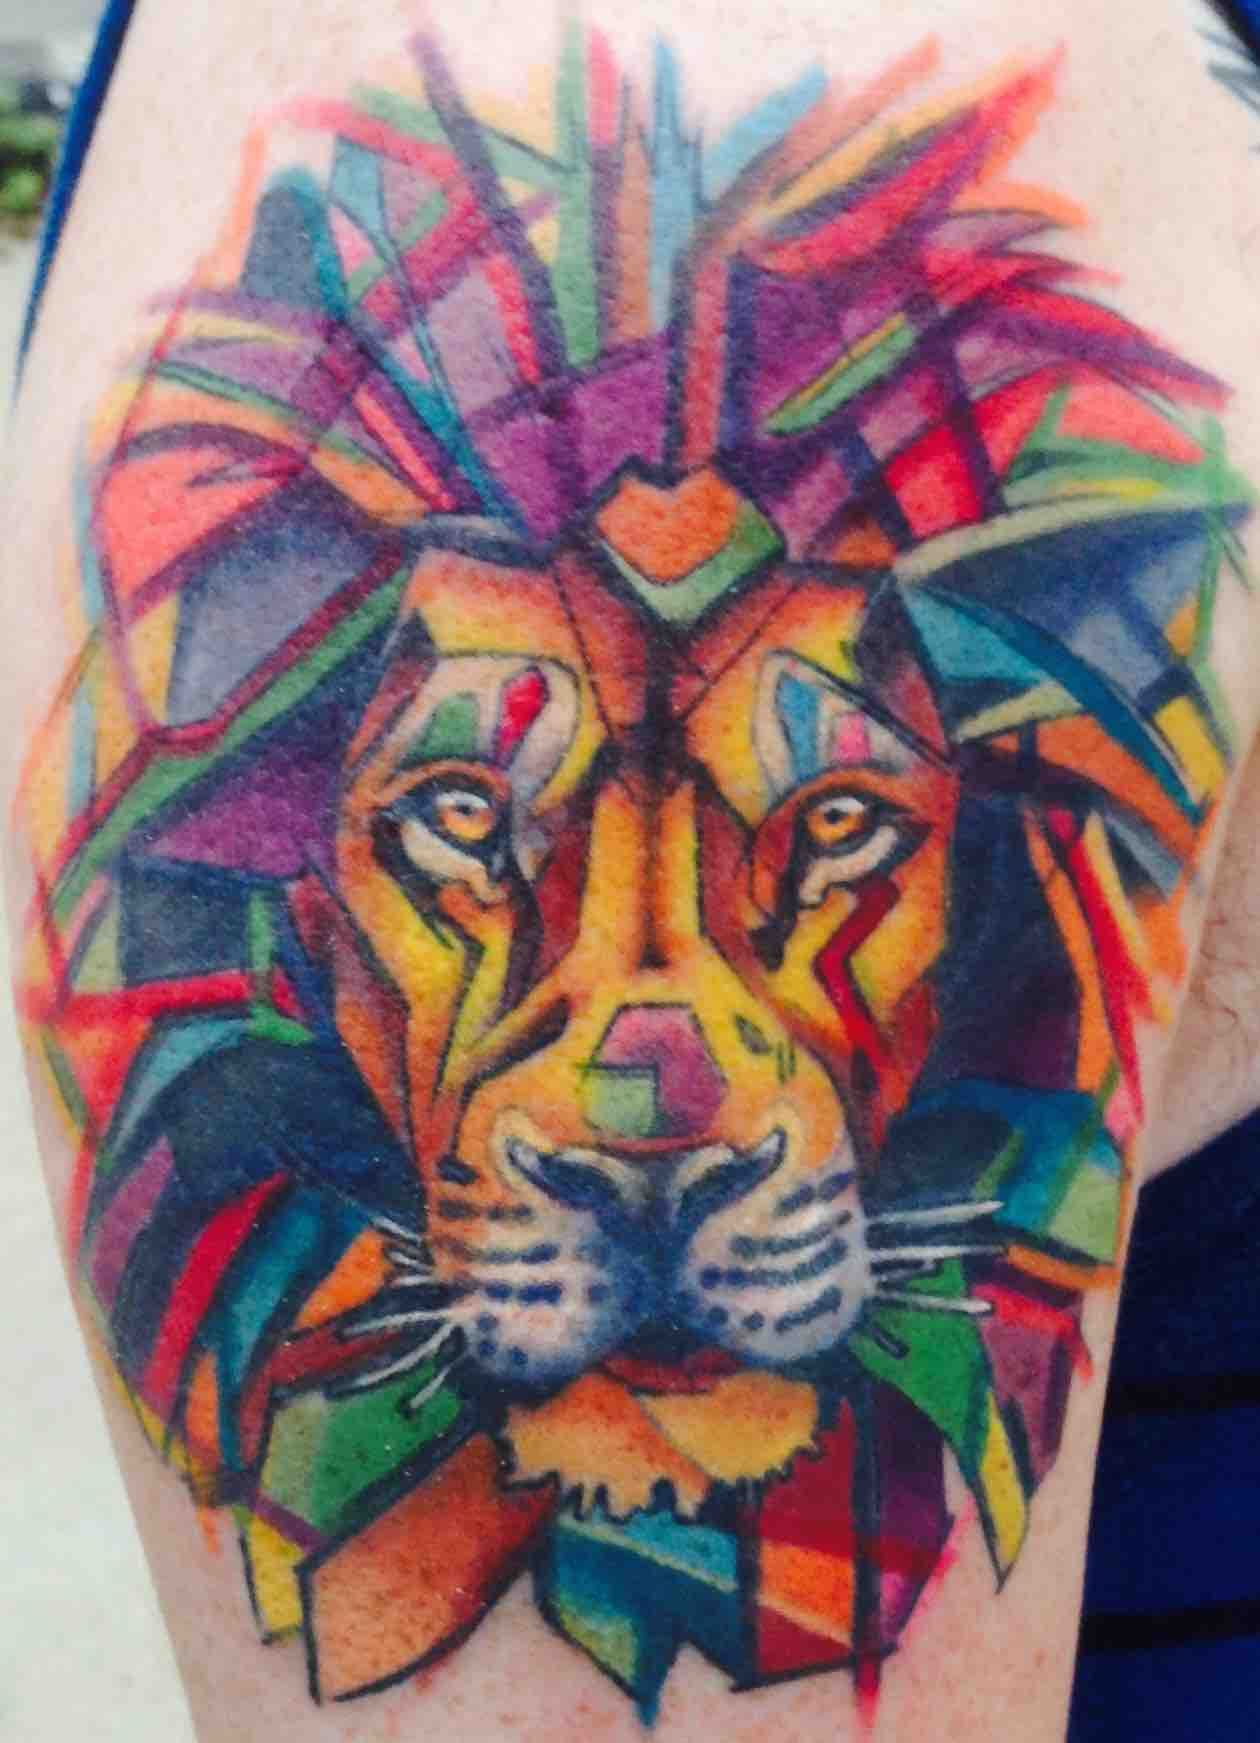 Watercolor Lion by James Hurley at Eclectic Tattoo Lansing, Michigan.